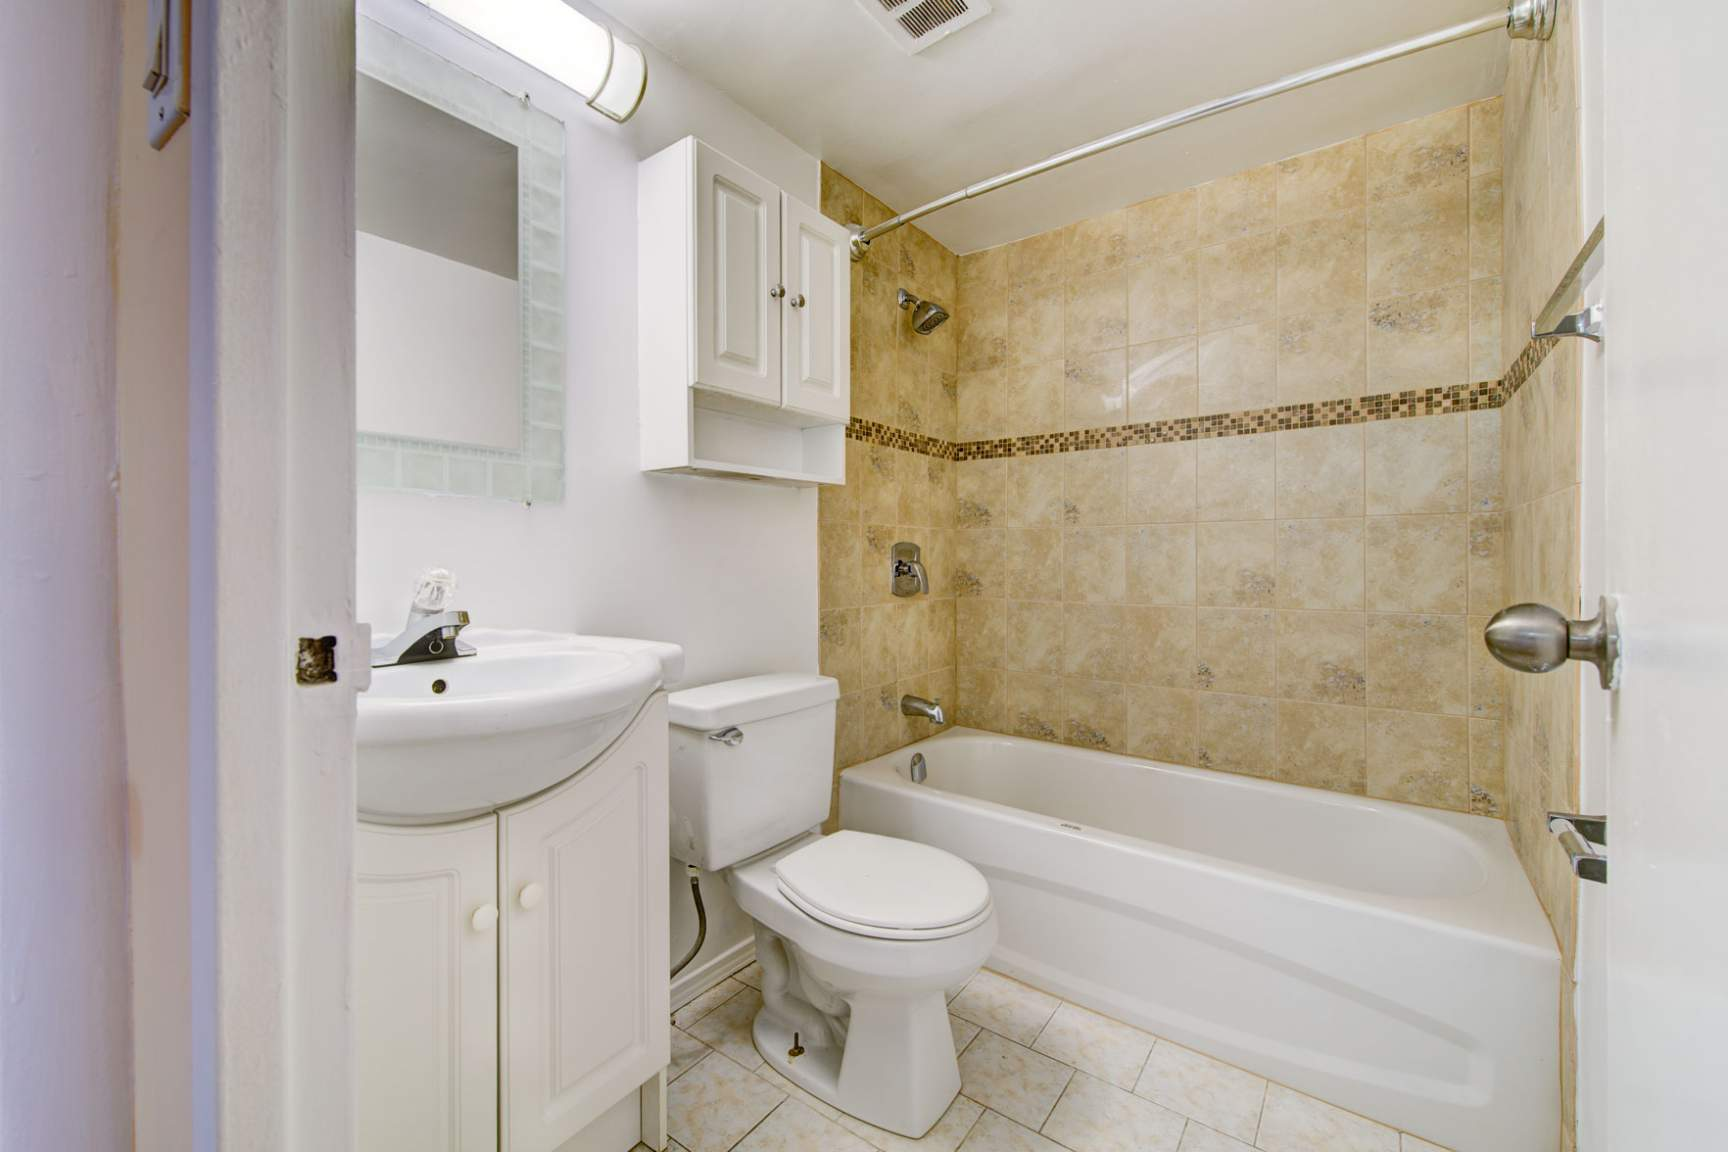 Studio / Bachelor Apartments for rent in Toronto at Redpath Tower - Photo 15 - RentersPages – L400652